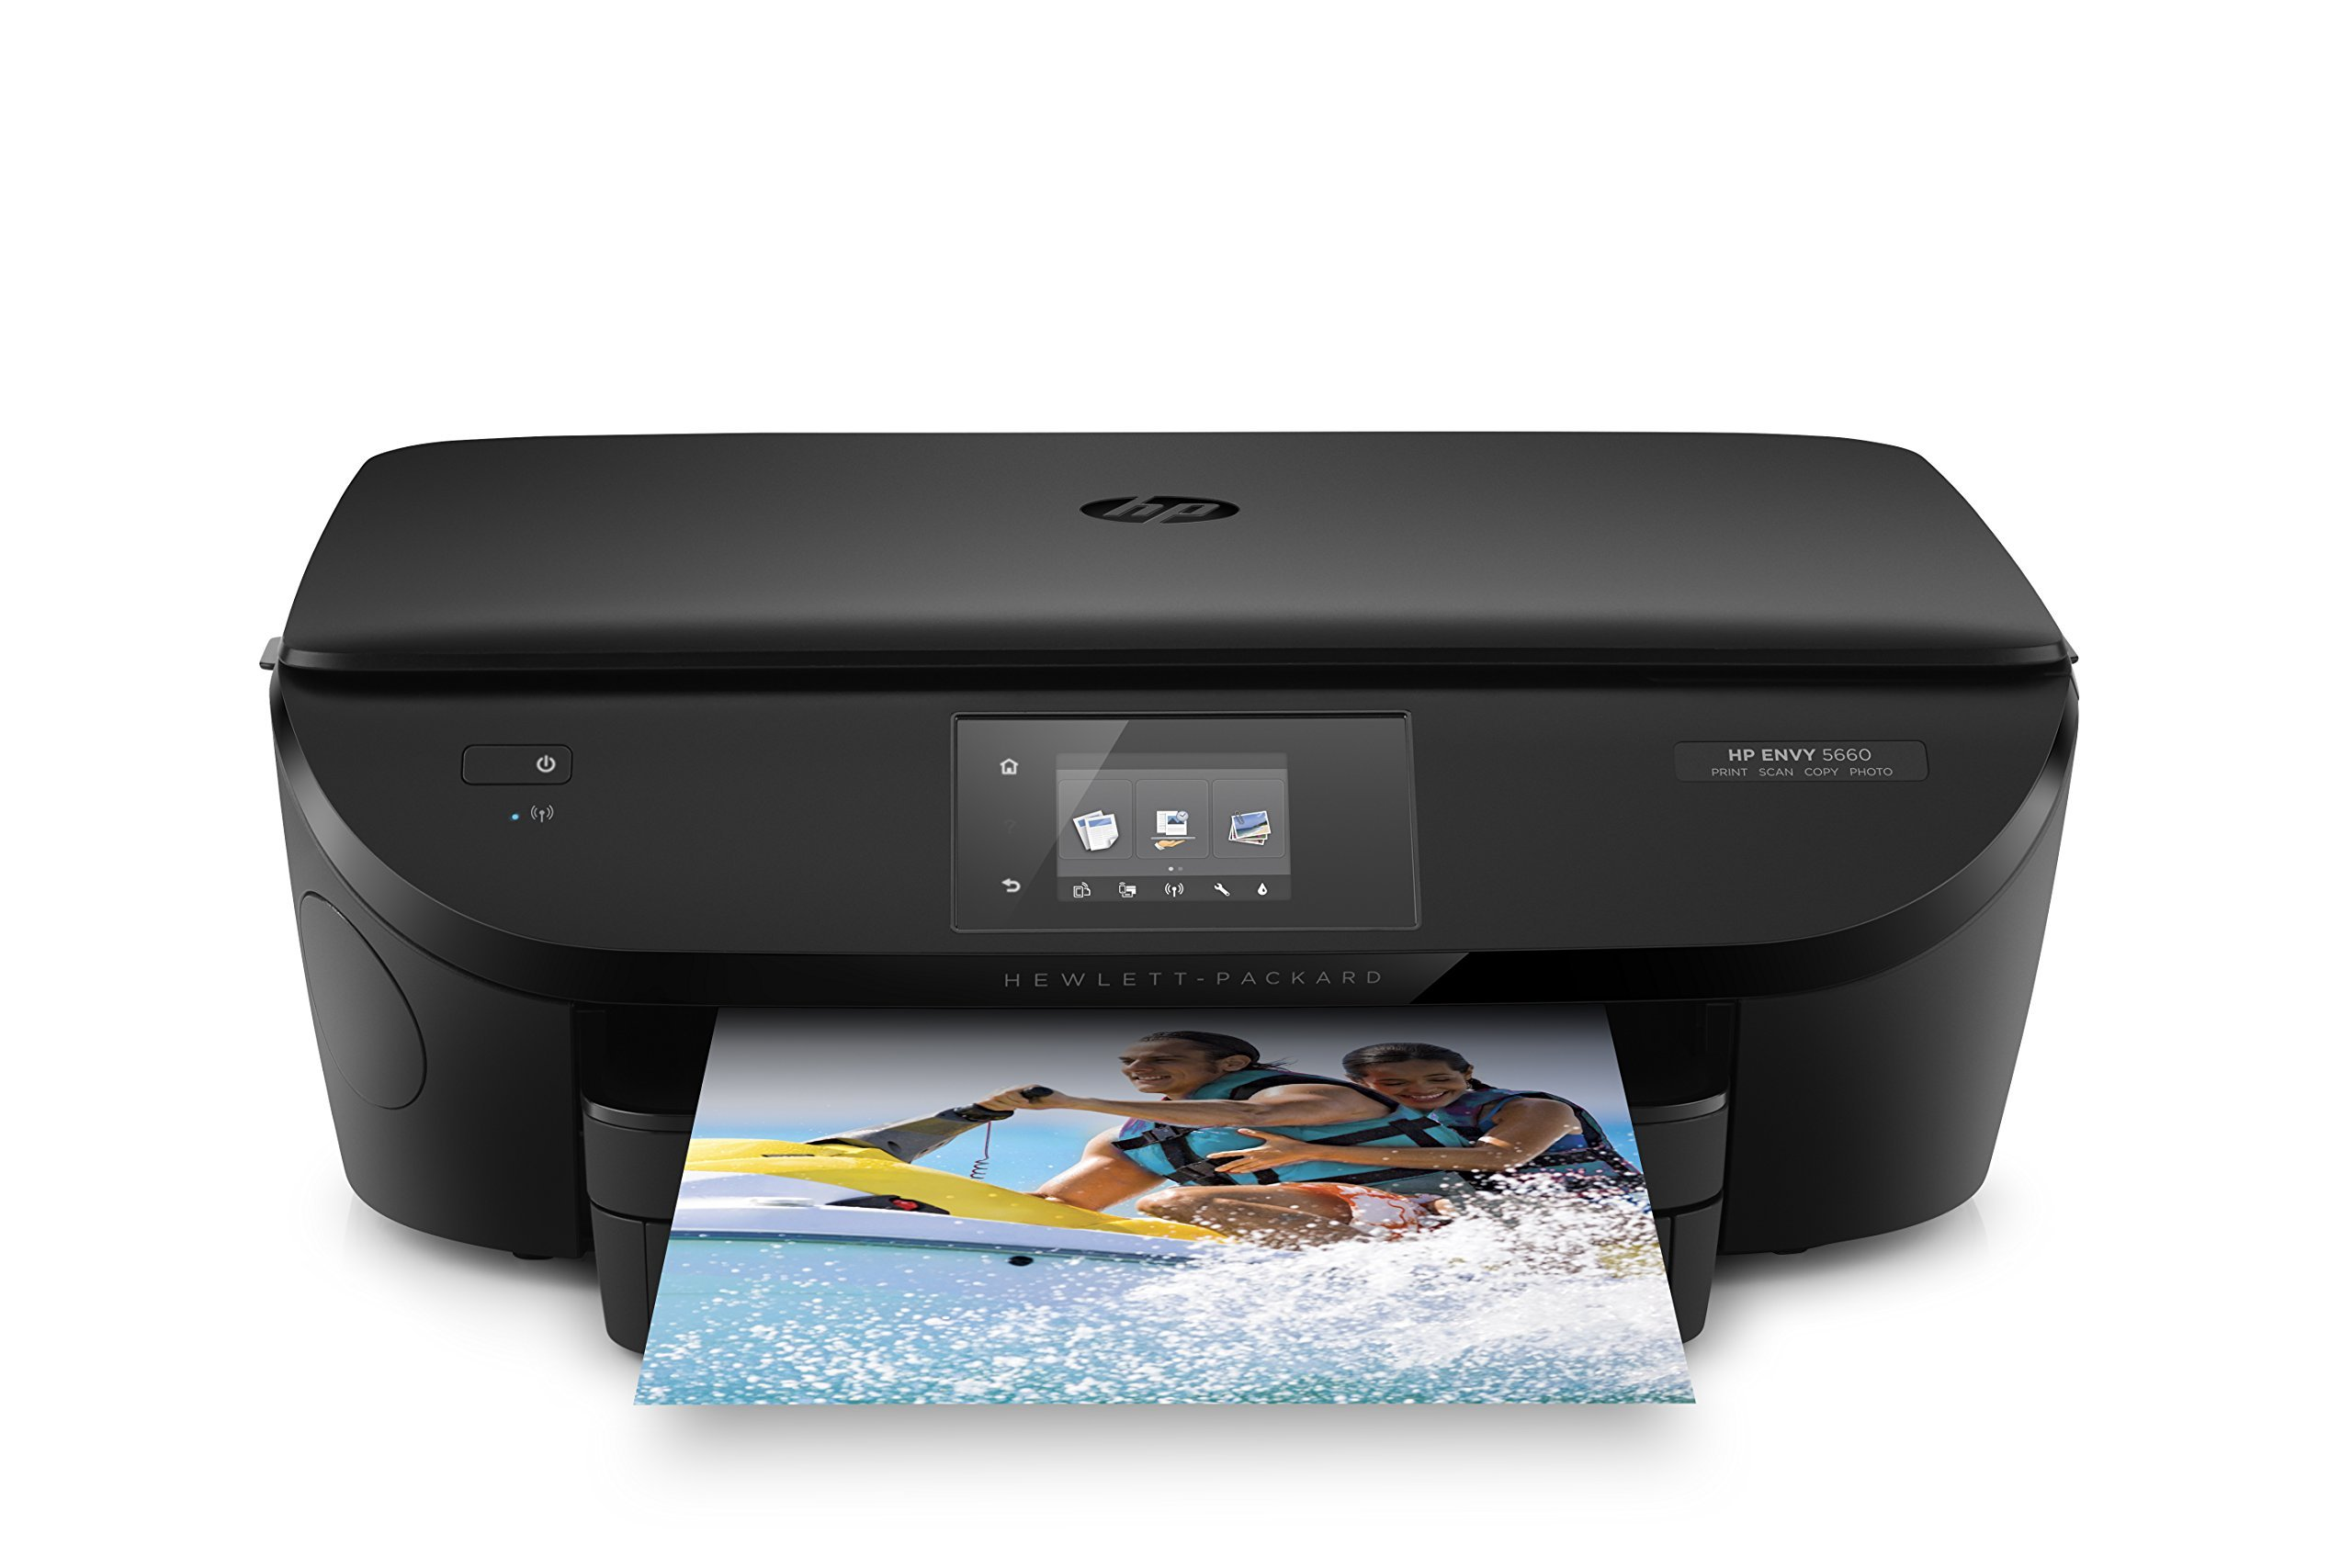 HP ENVY 5660 Wireless All-in-One Photo Printer with Mobile Printing, HP Instant Ink & Amazon Dash Replenishment ready (F8B04A) (Renewed) by HP